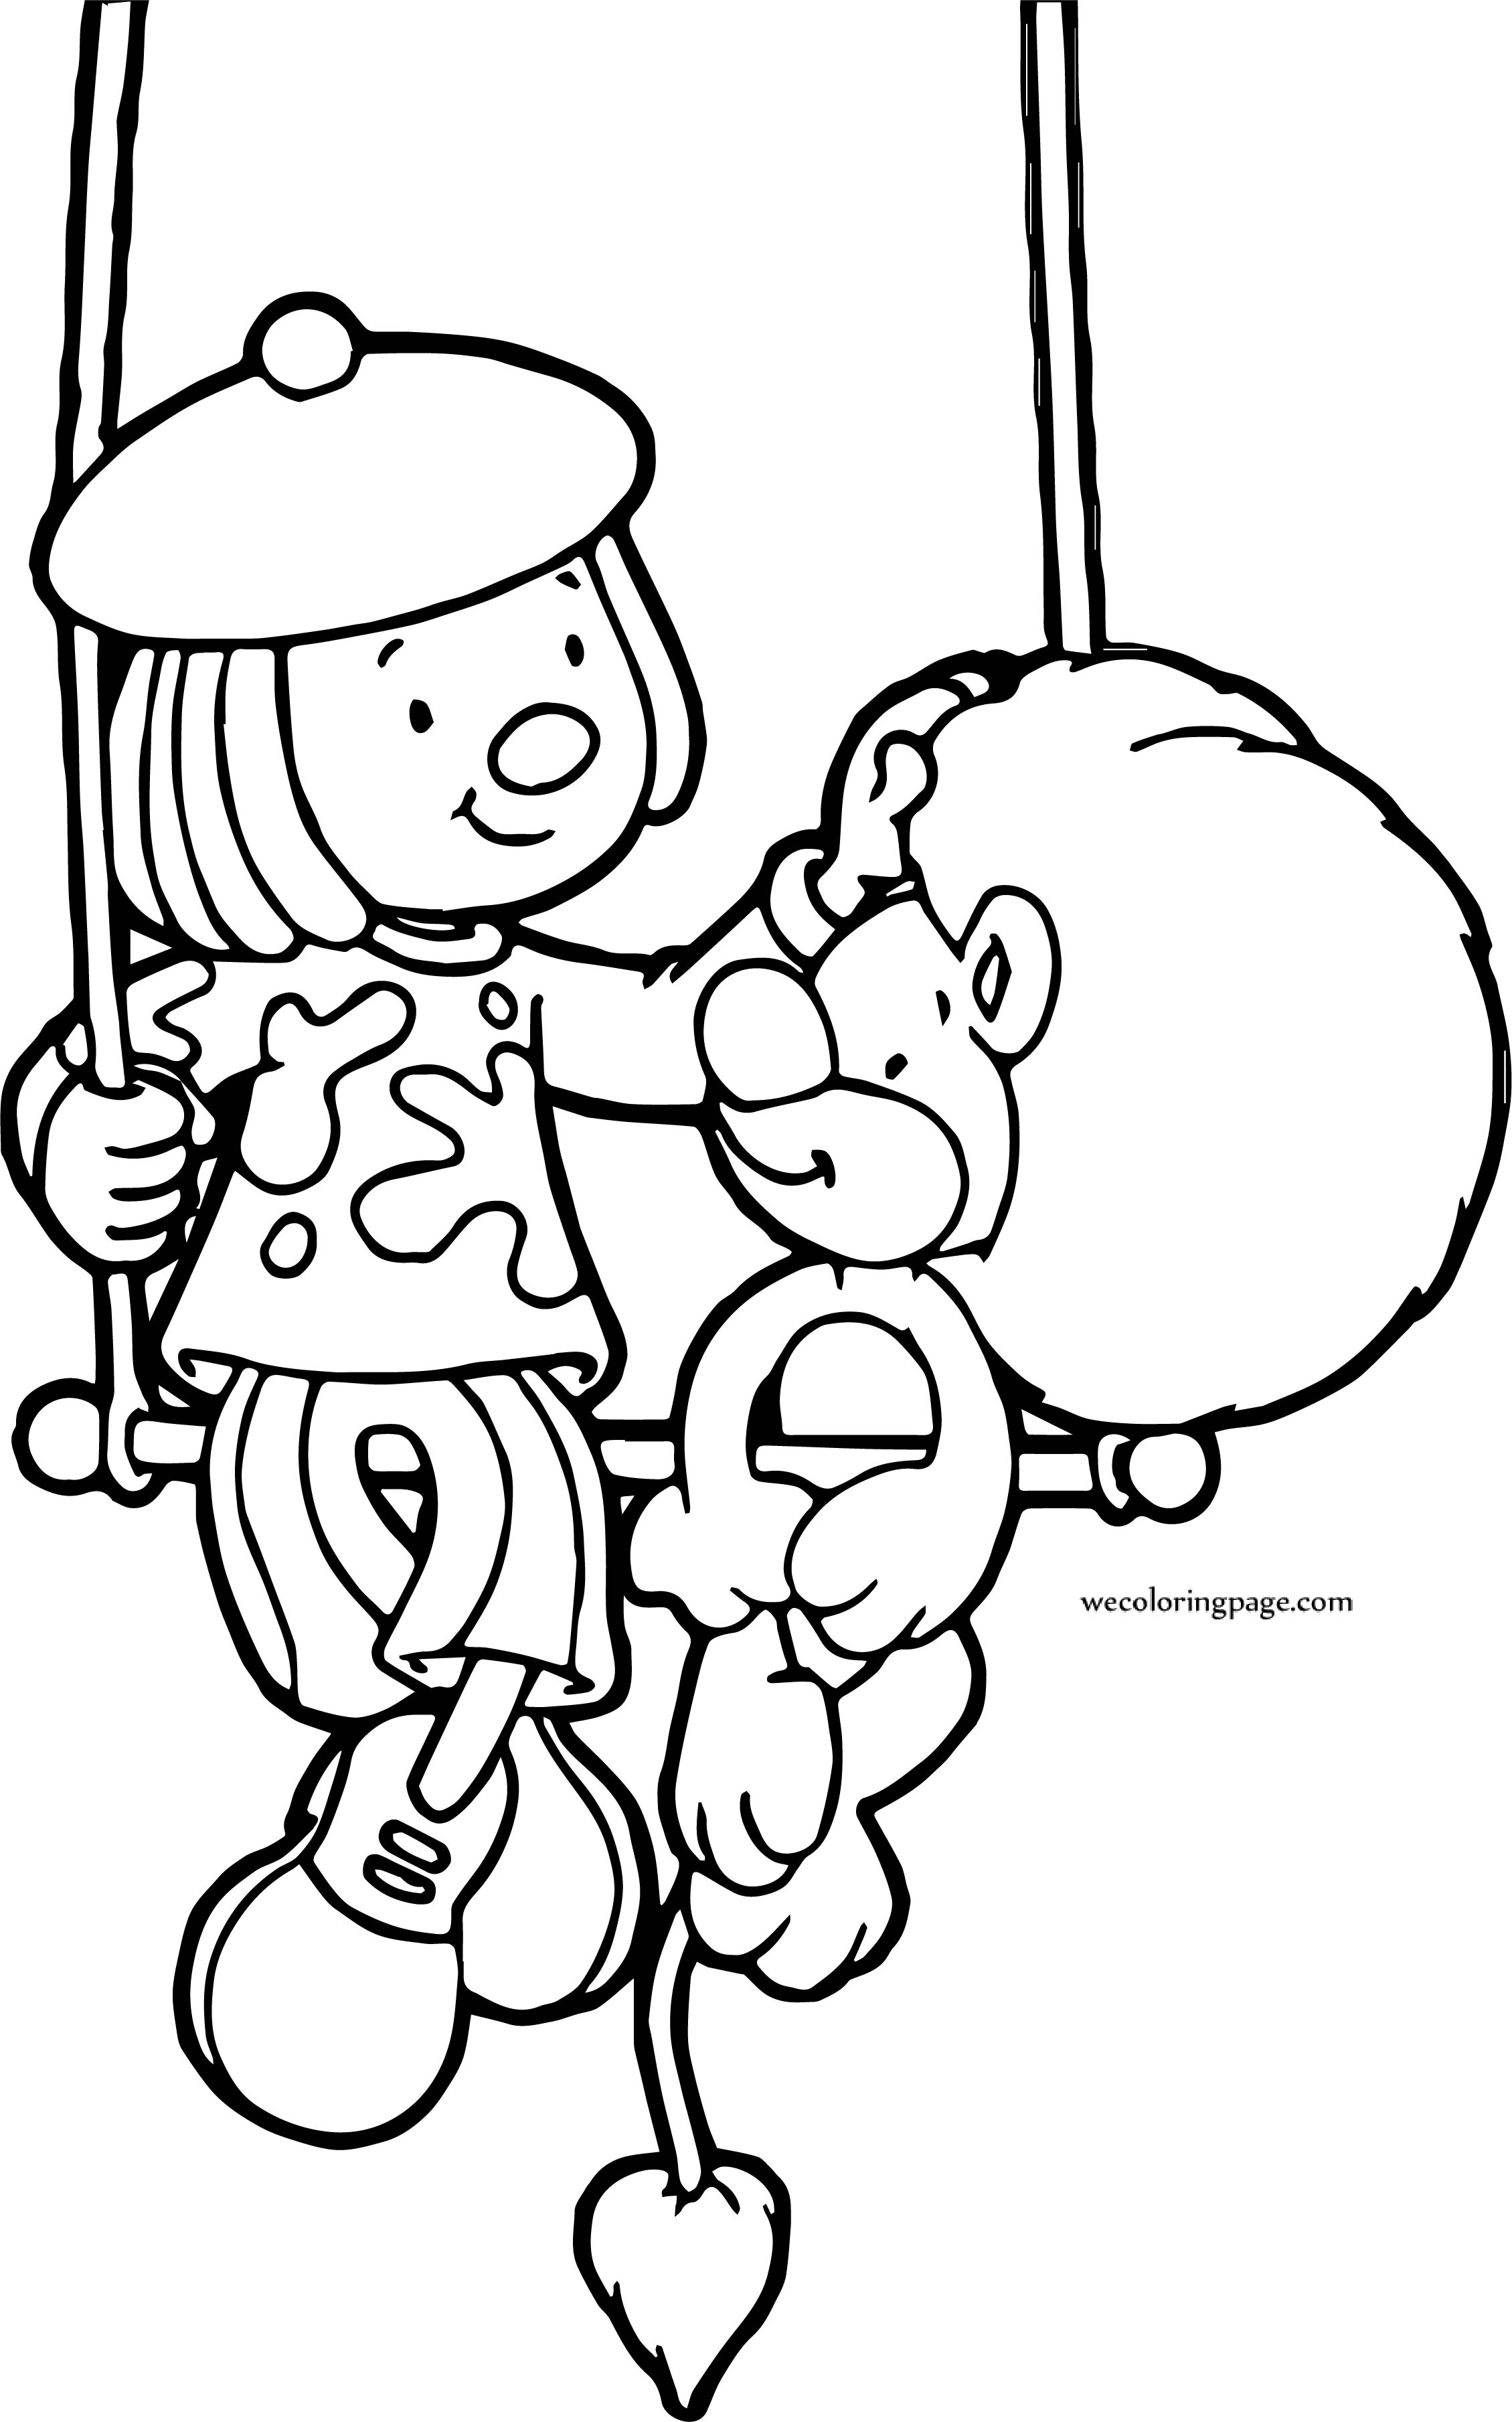 Jojo Goliath Swing Circus Lion Coloring Page